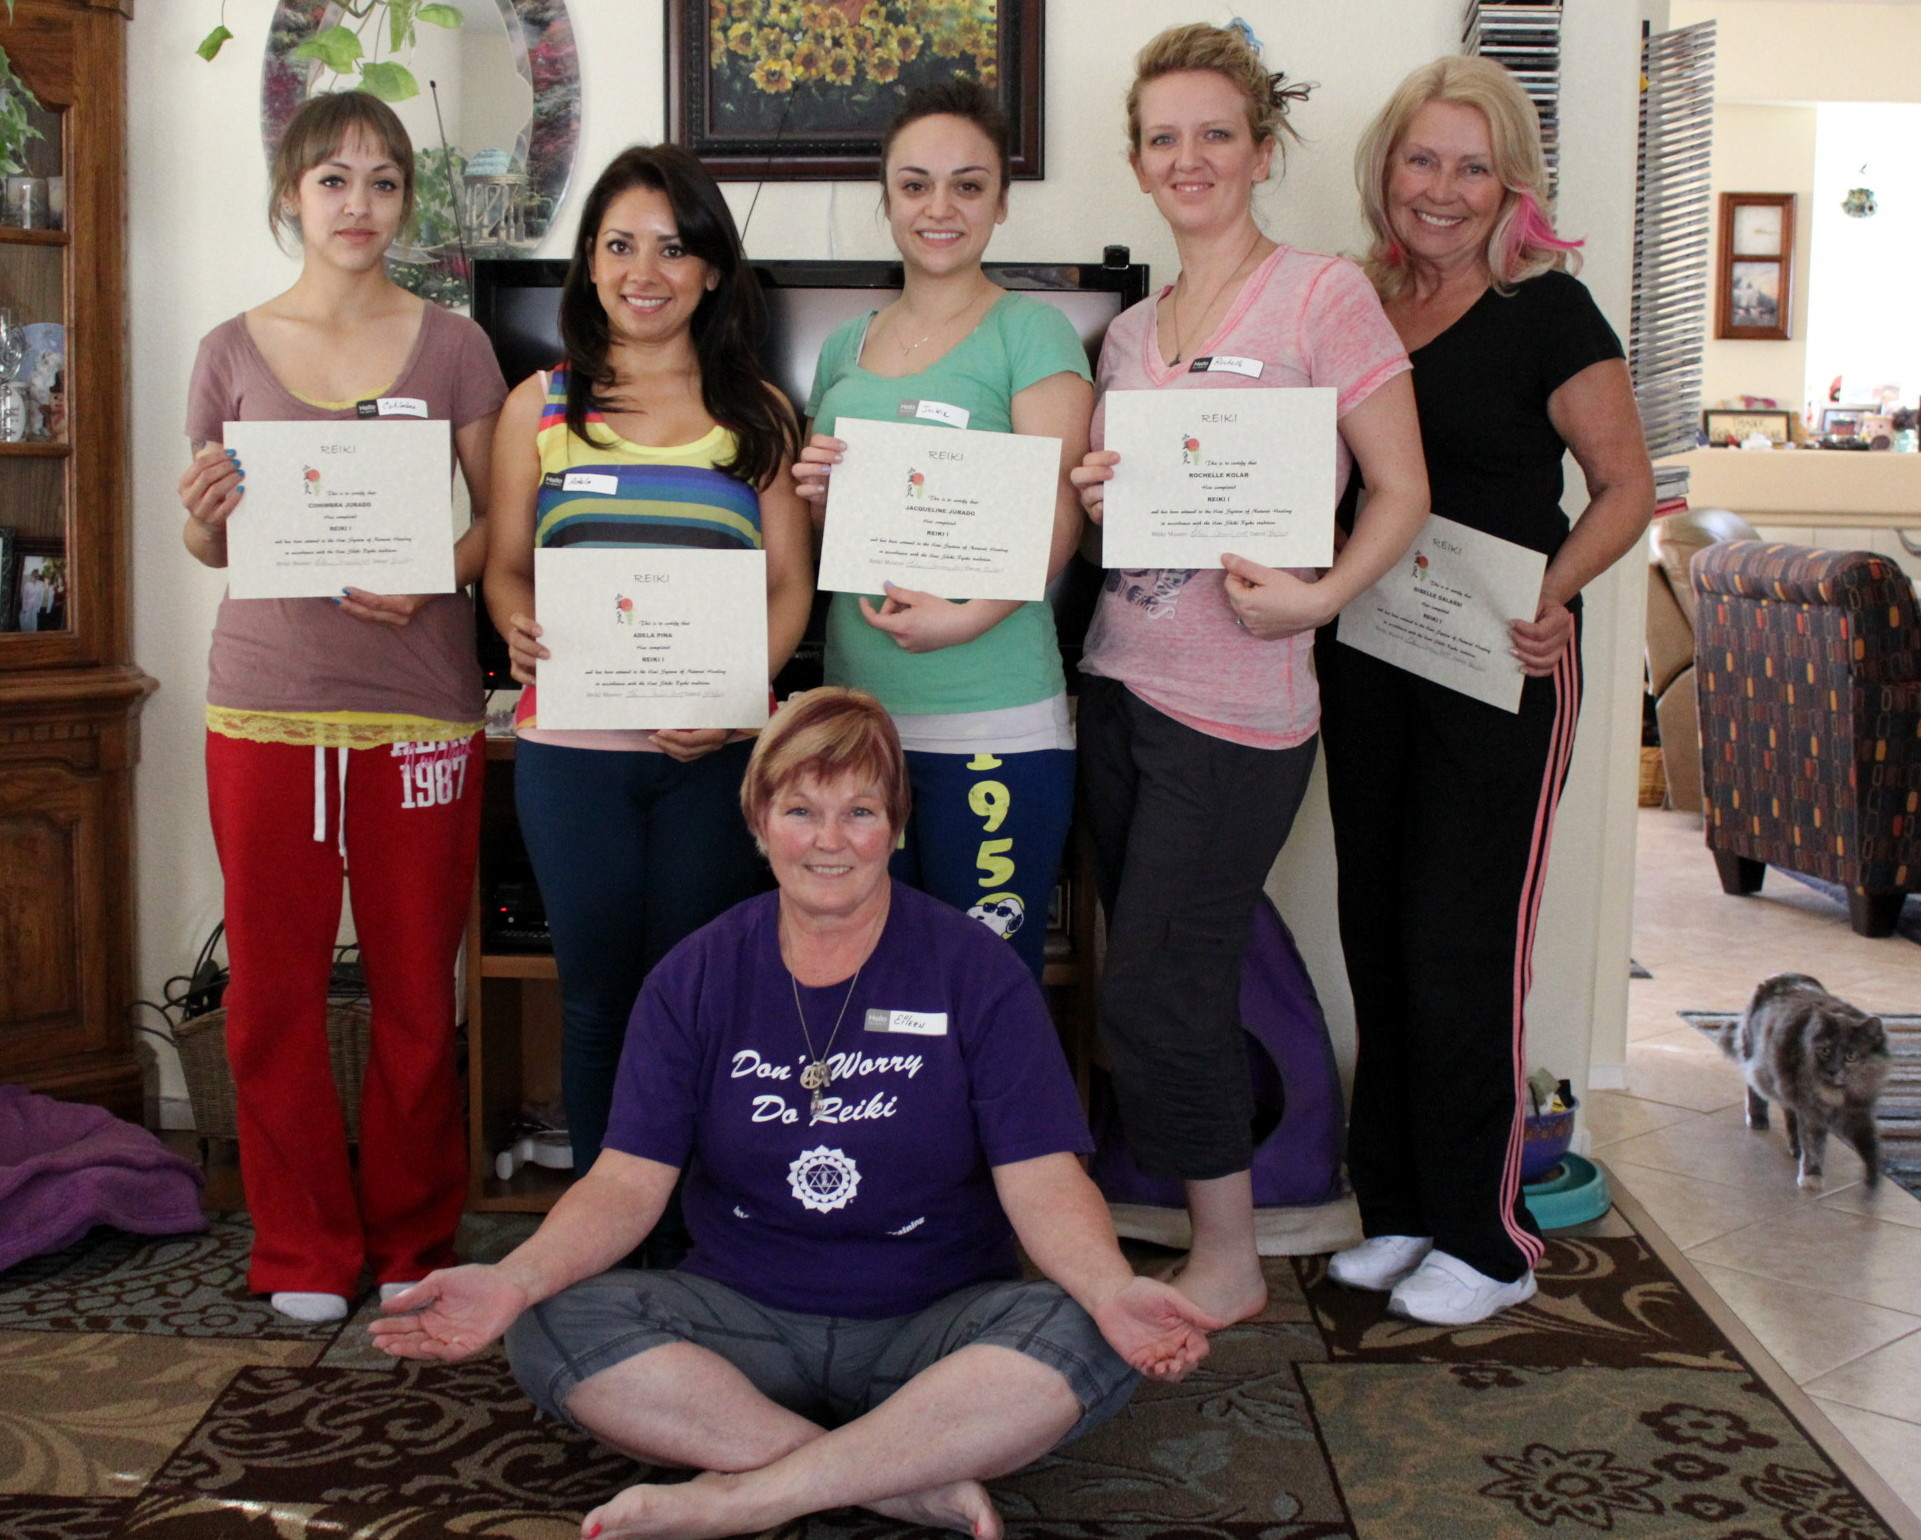 Reiki 1 Certification Class Las Vegas with Reiki Master Eileen at Anne Penman Reiki Las Vegas 2013